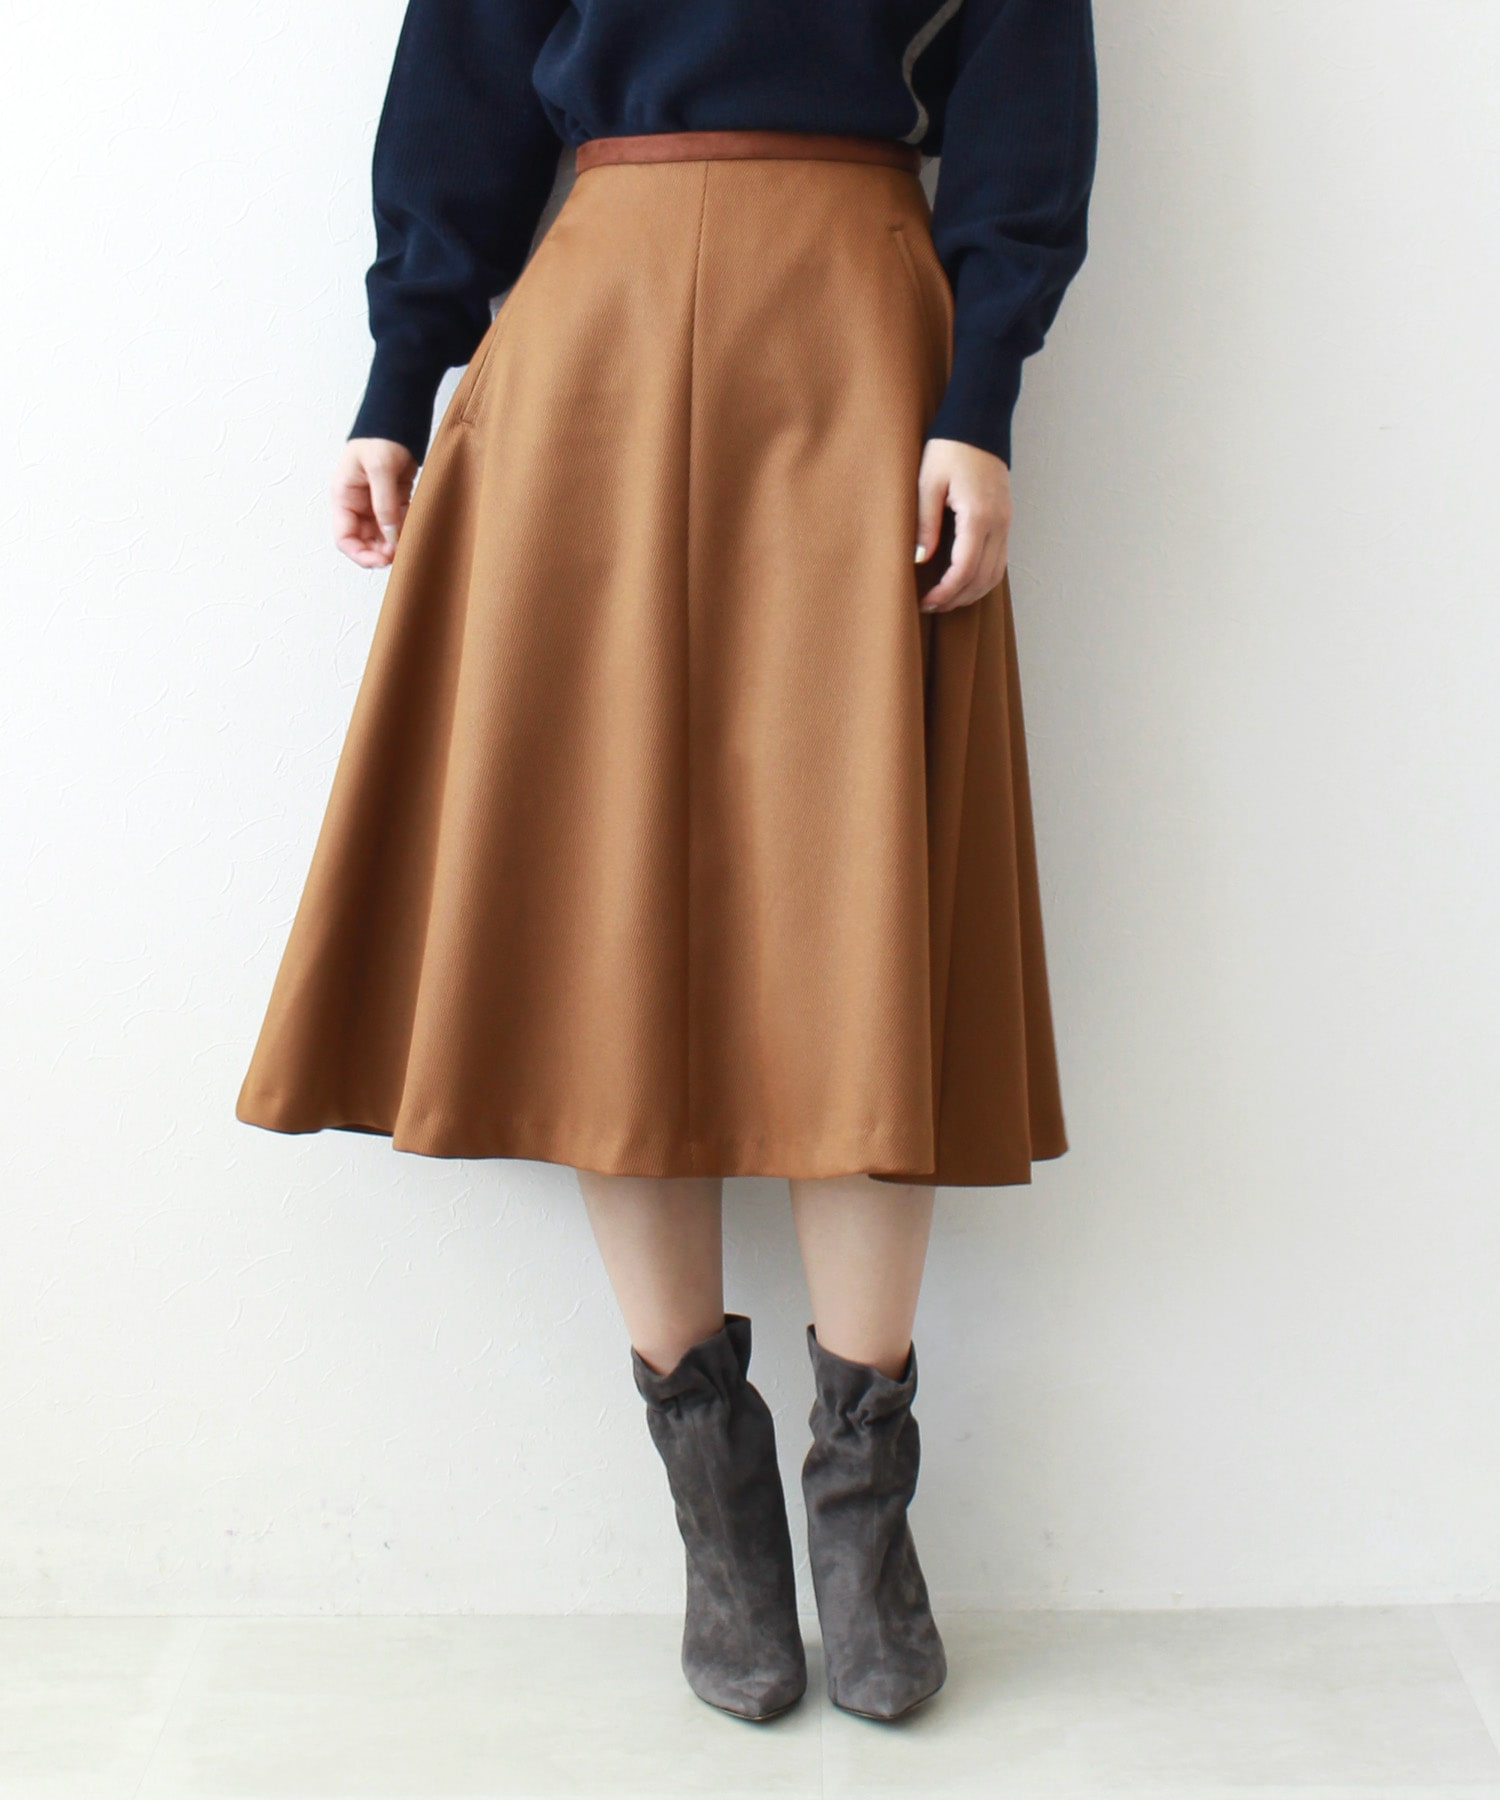 classic calze flare skirt